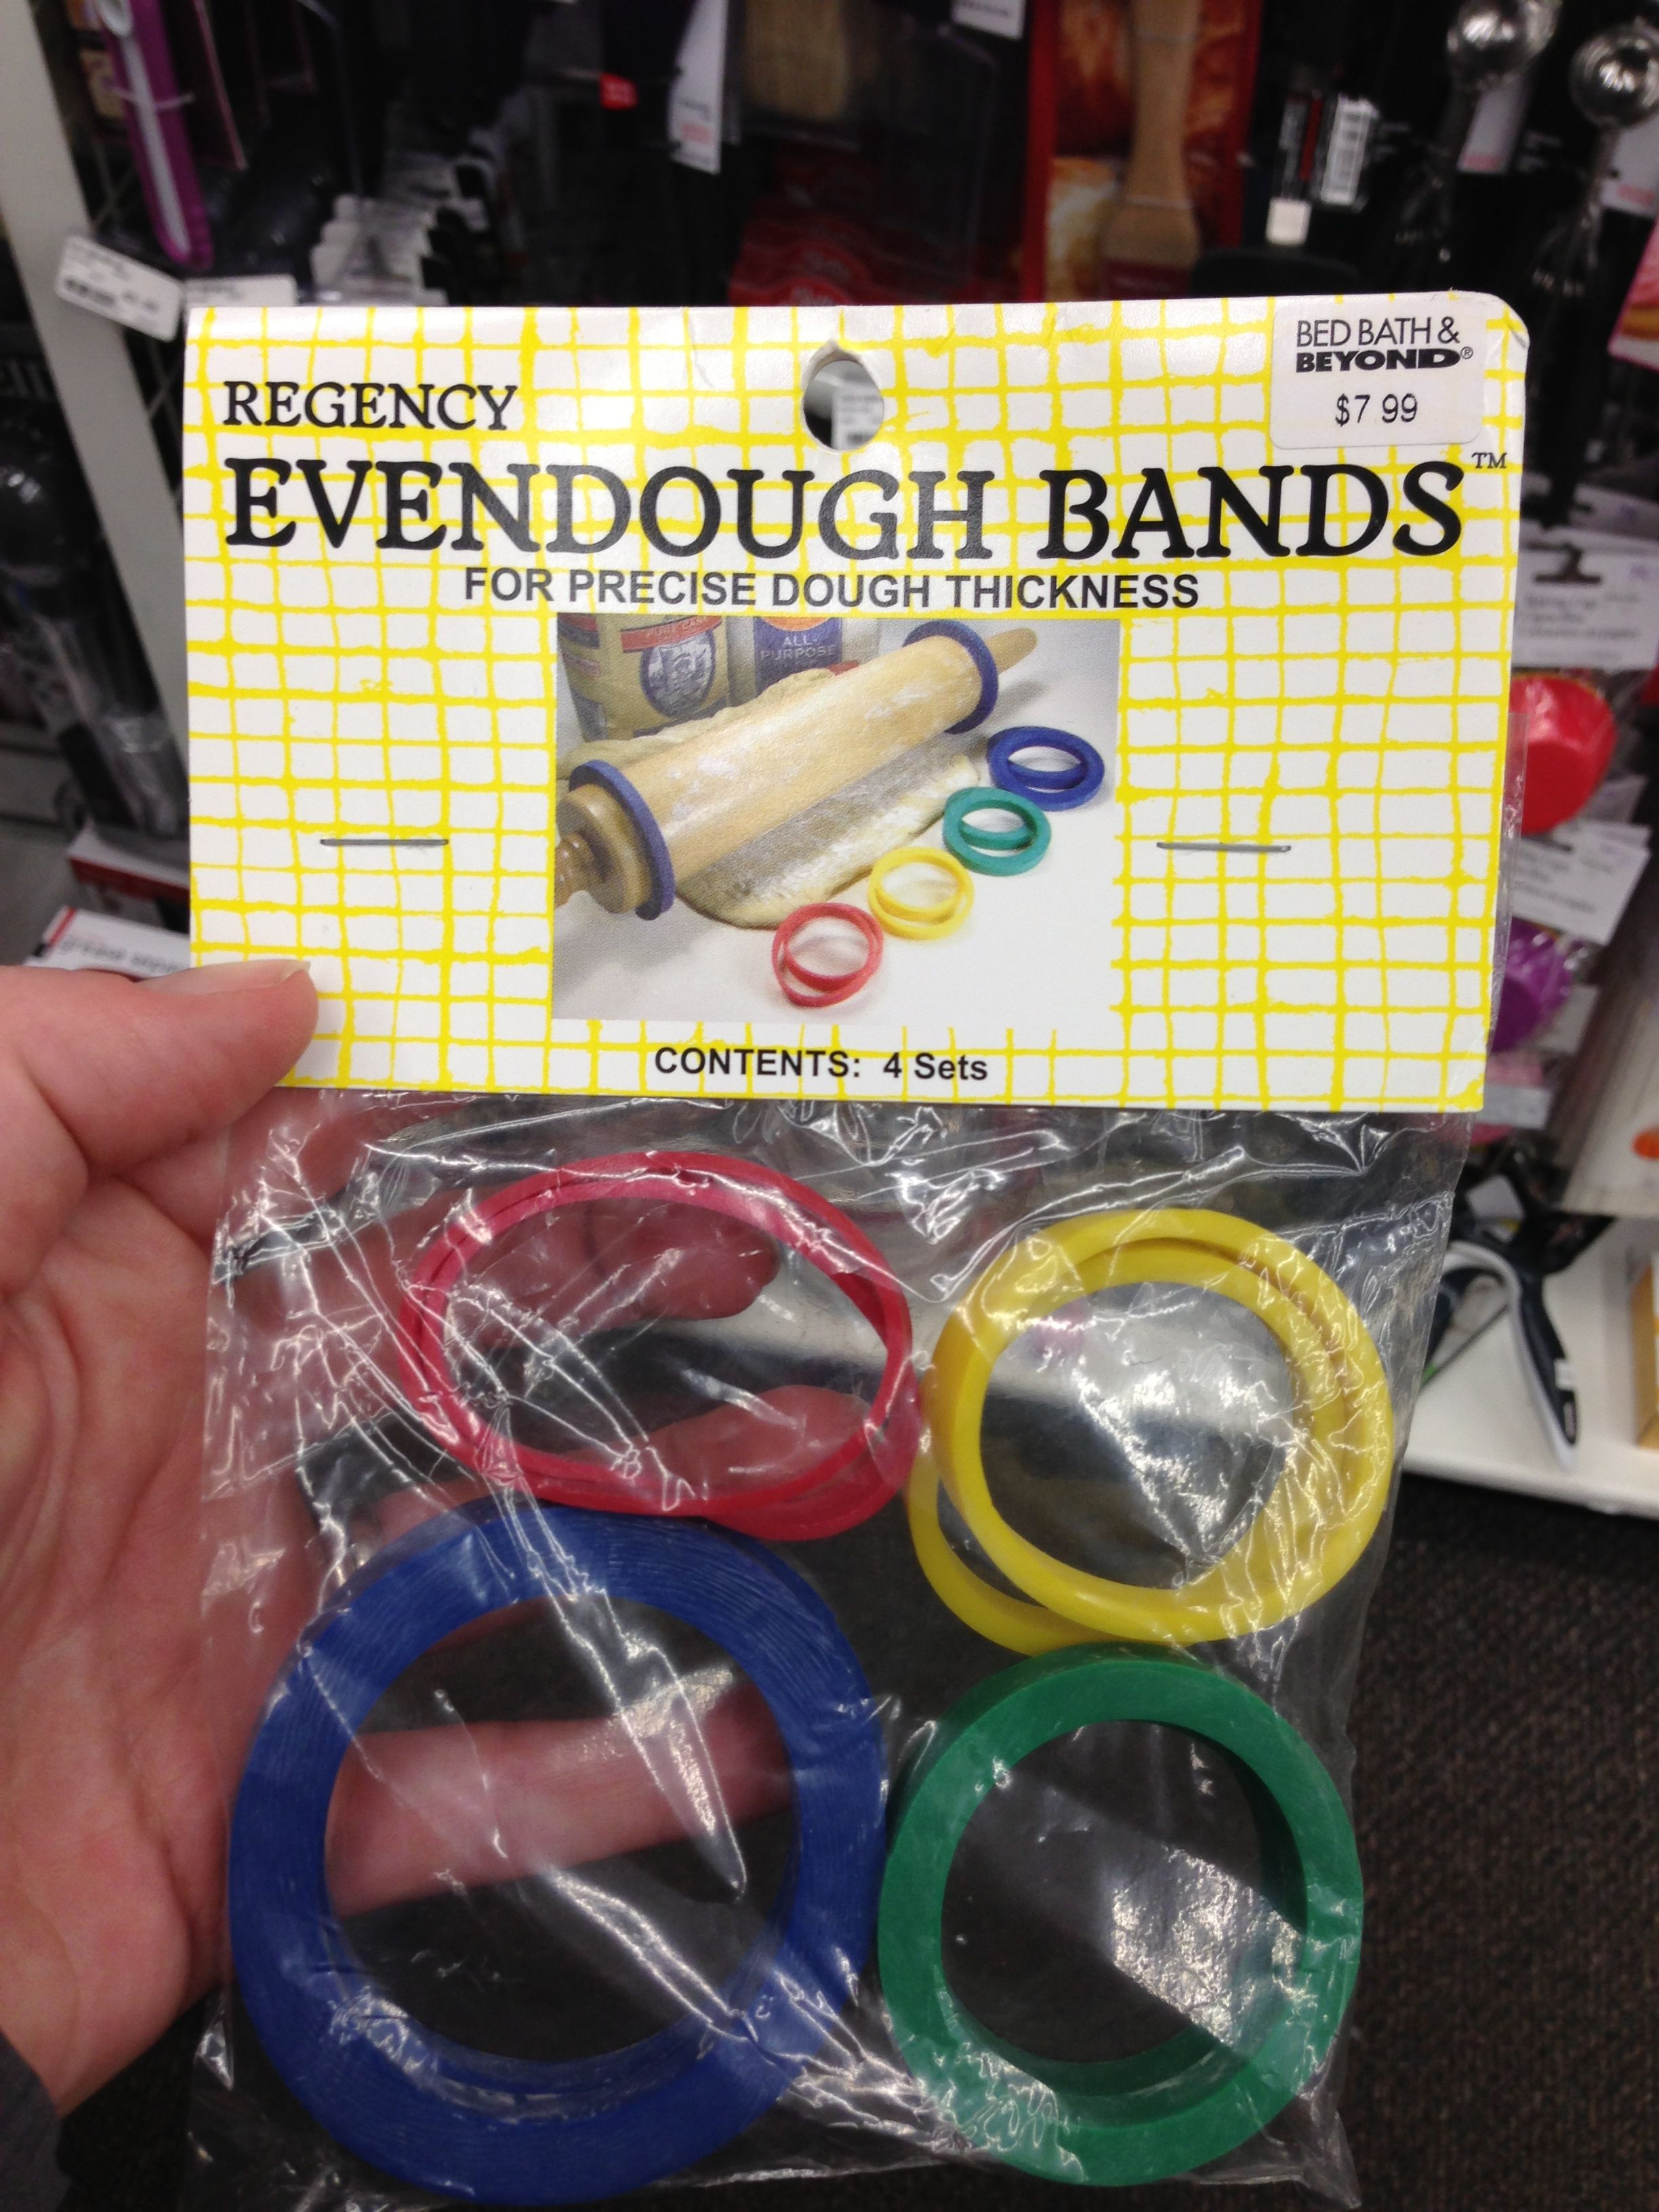 Place these bands around a rolling pin to create even clay